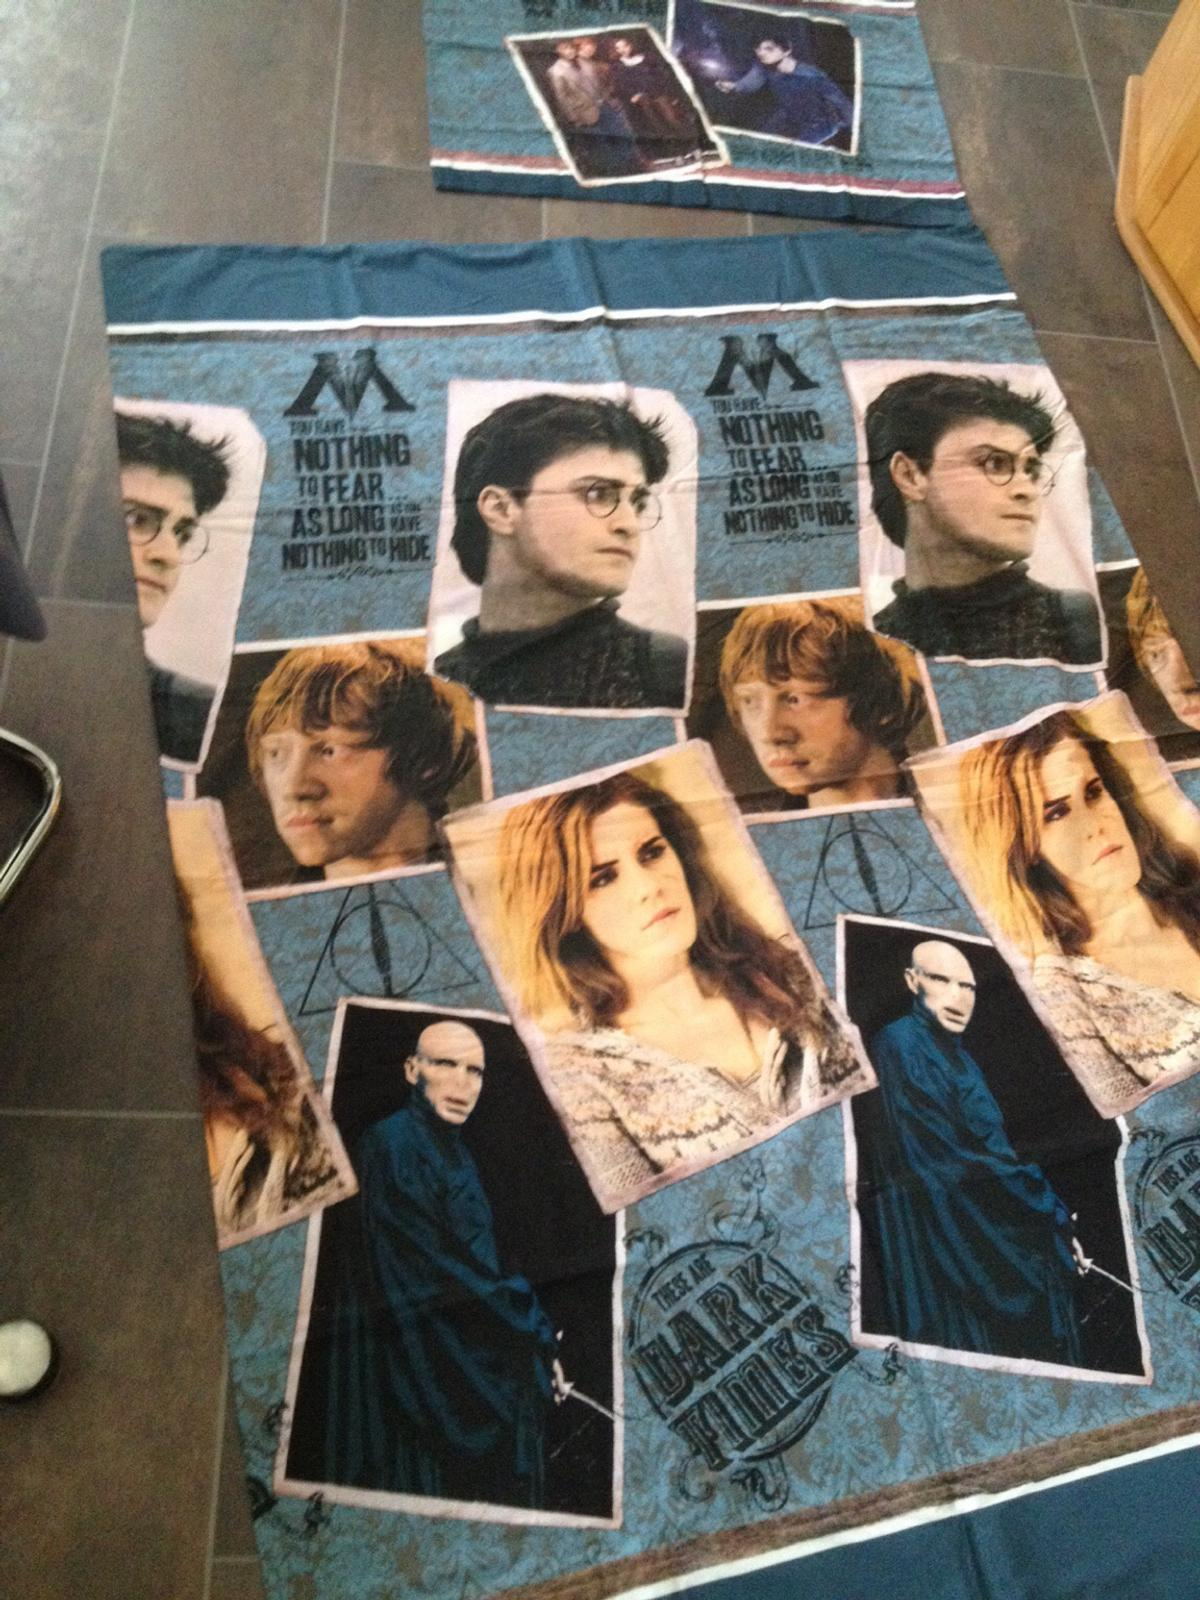 Harry Potter Bettwäsche In 6410 Telfs For 20 00 For Sale Shpock